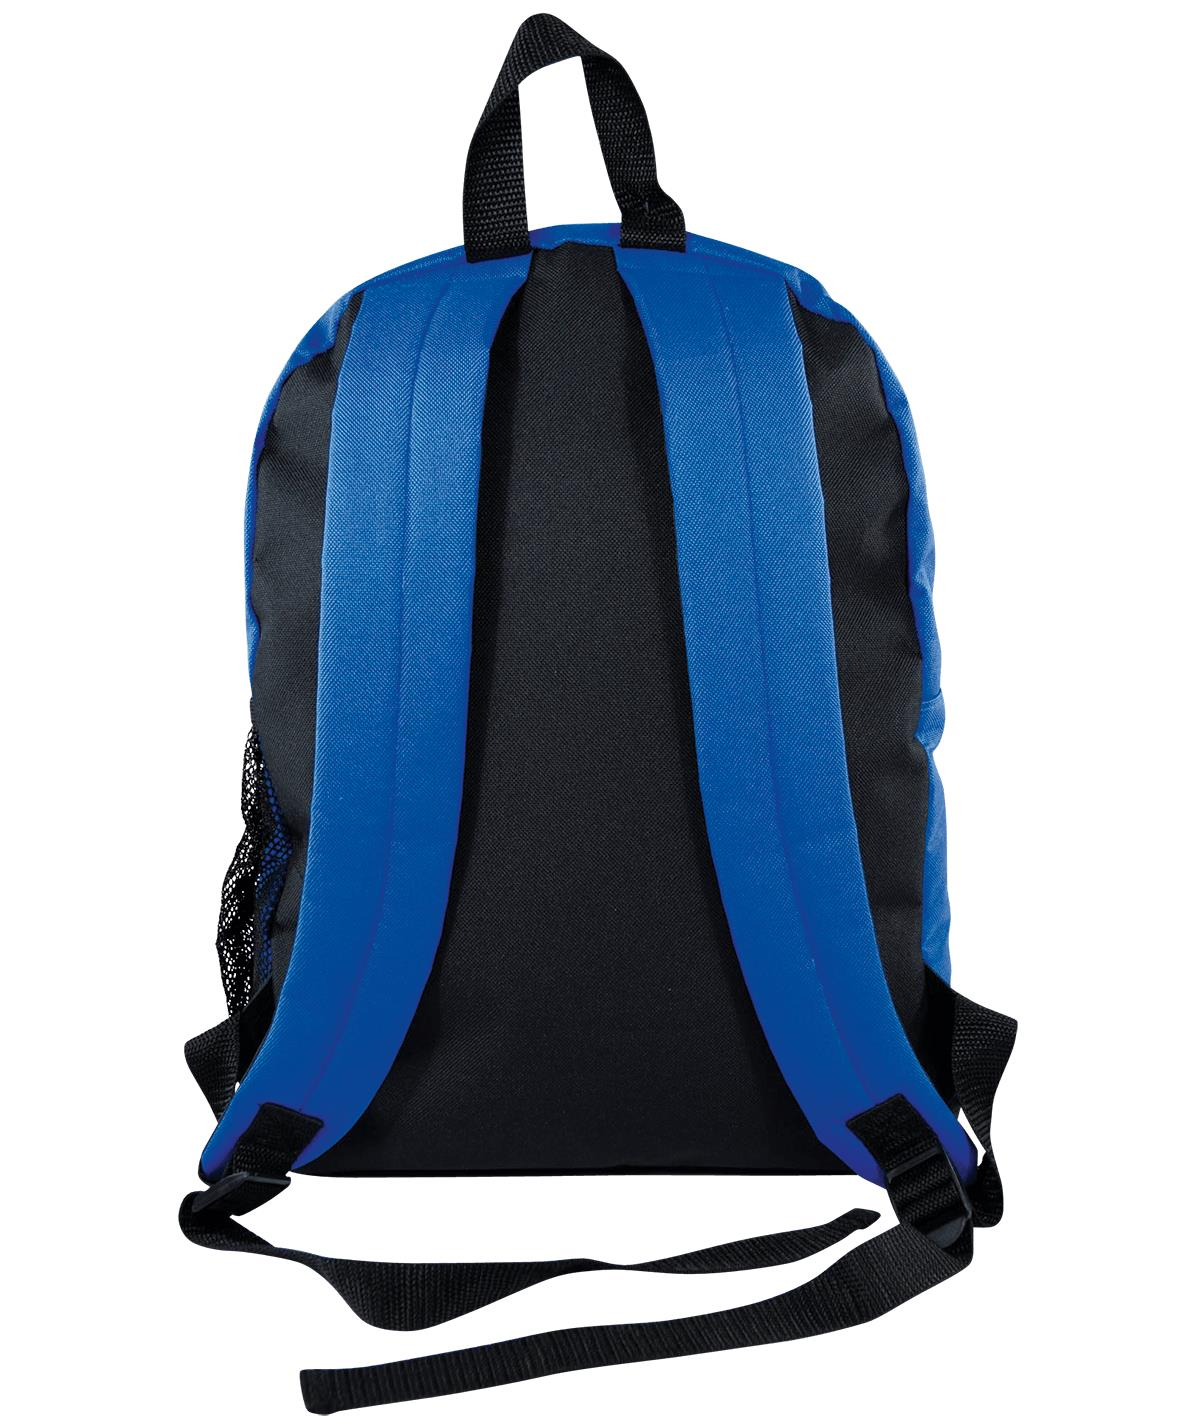 Chasse Basic Backpack